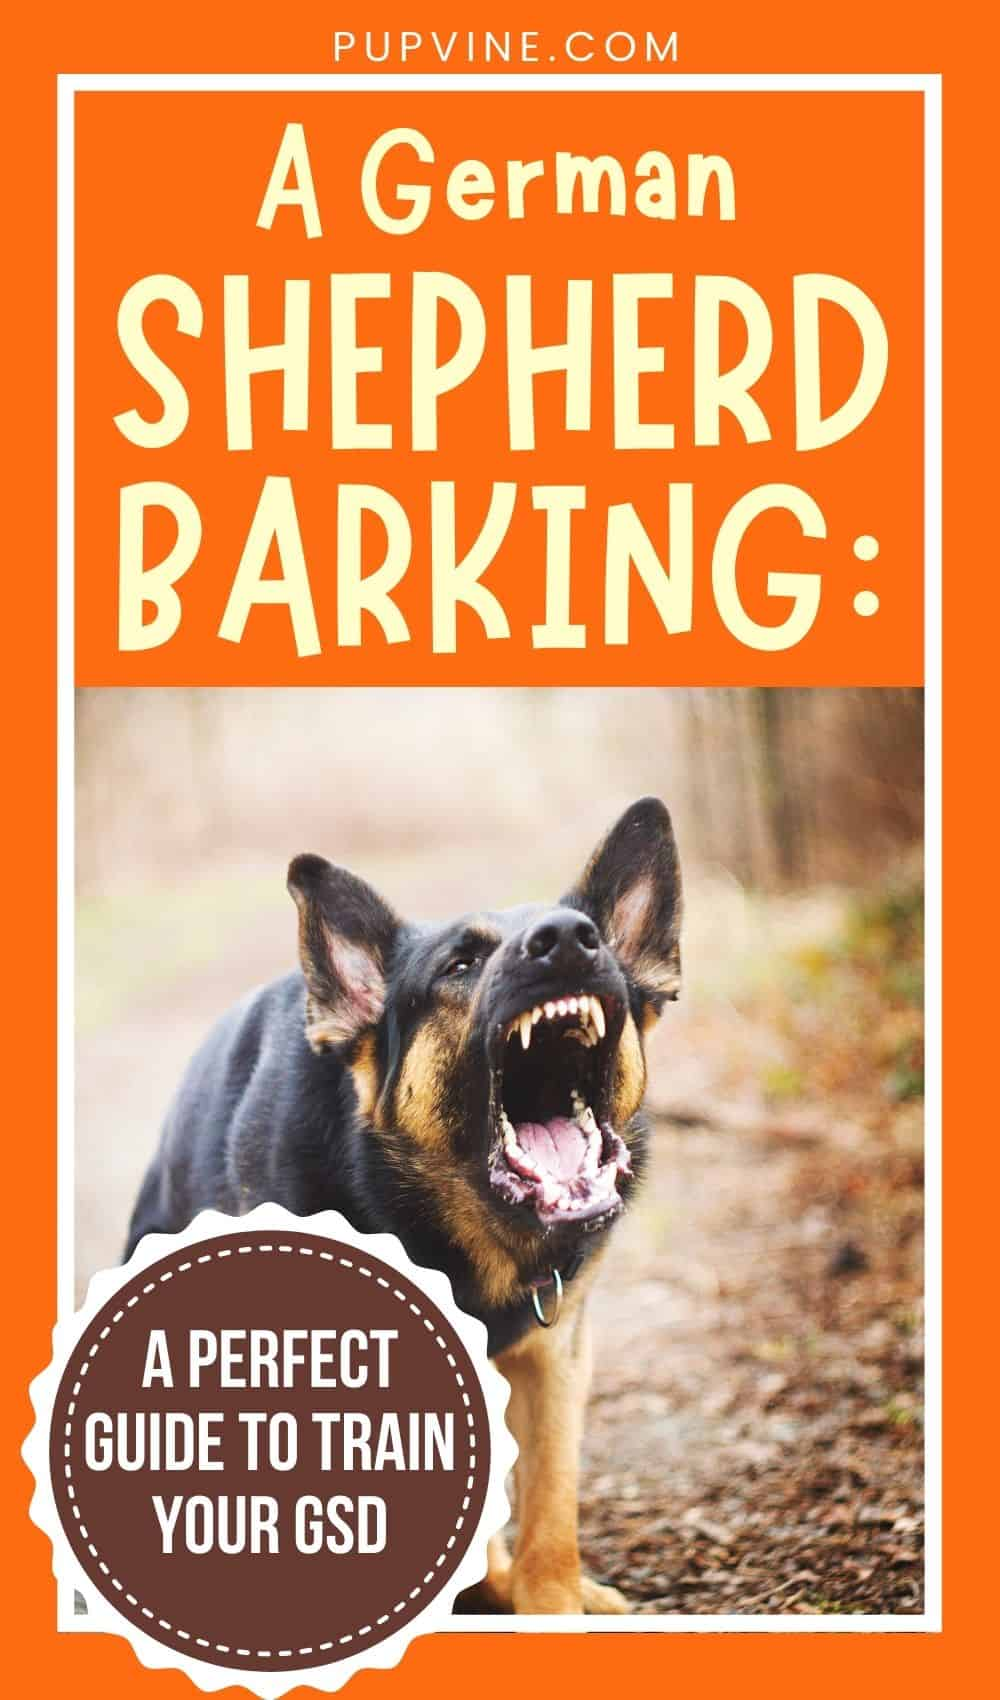 A German Shepherd Barking A Perfect Guide to Train Your GSD